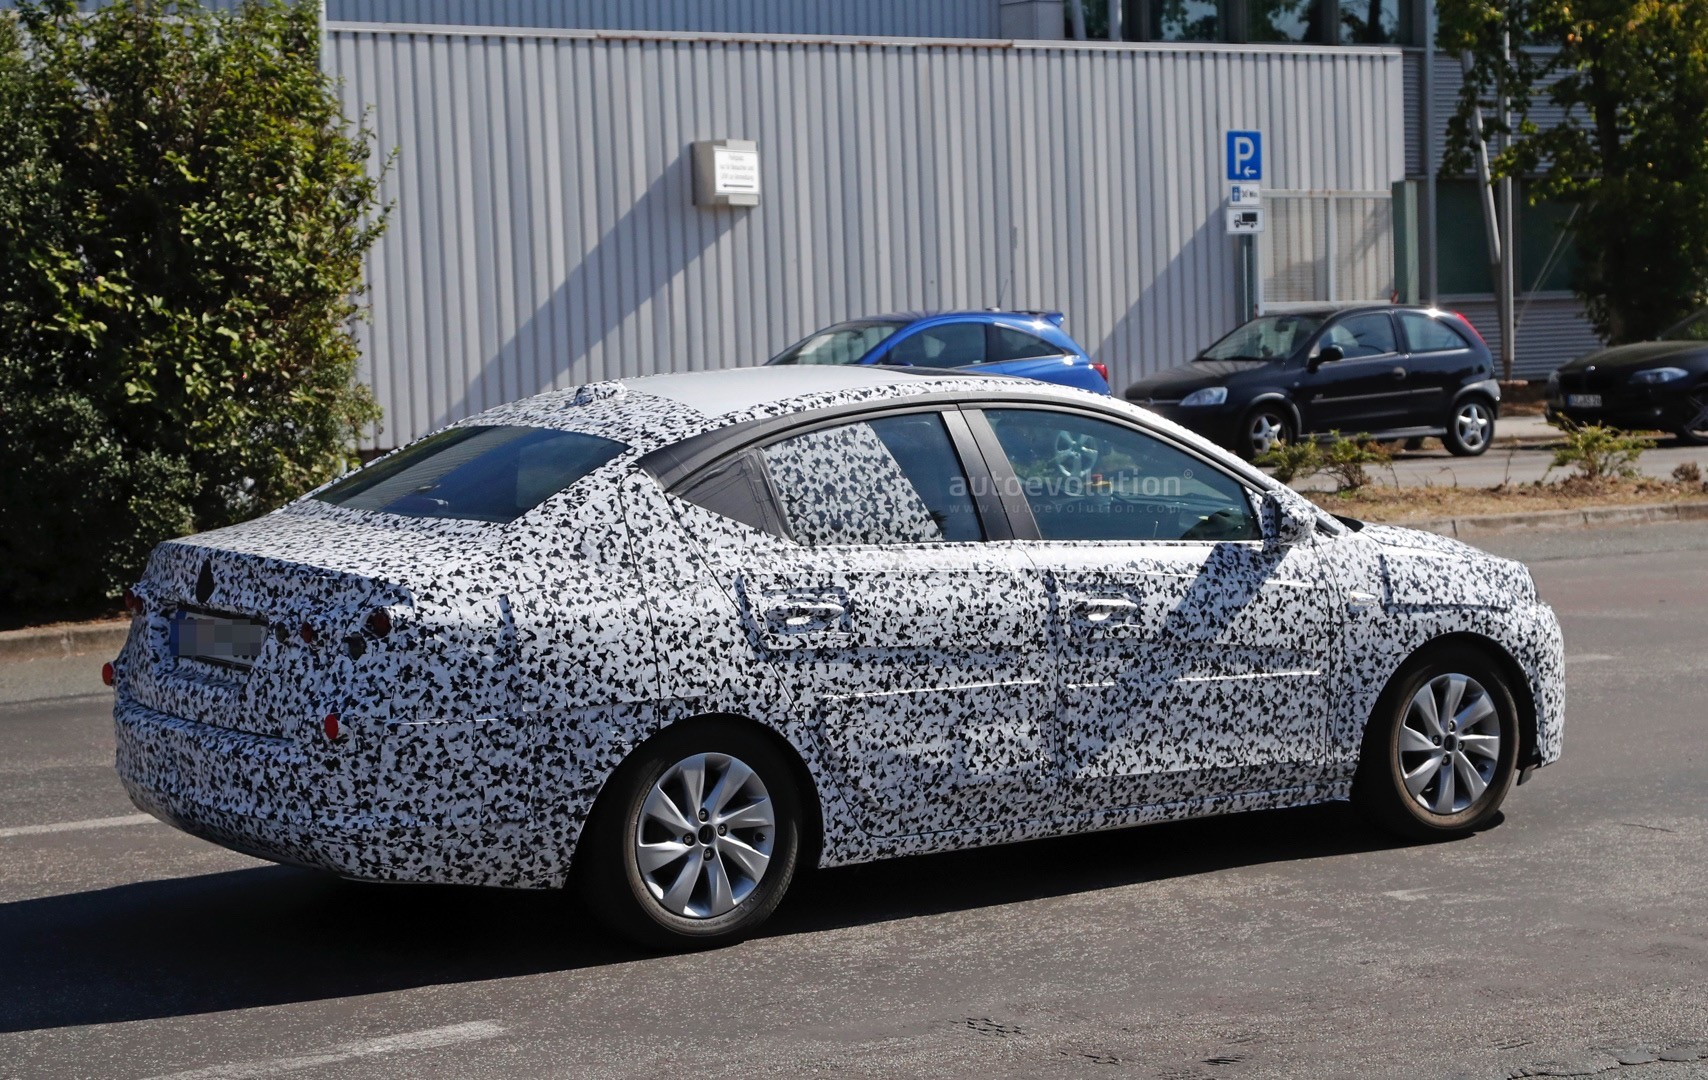 2018 Opel Corsa F Sedan Spied To Be Launched In China As